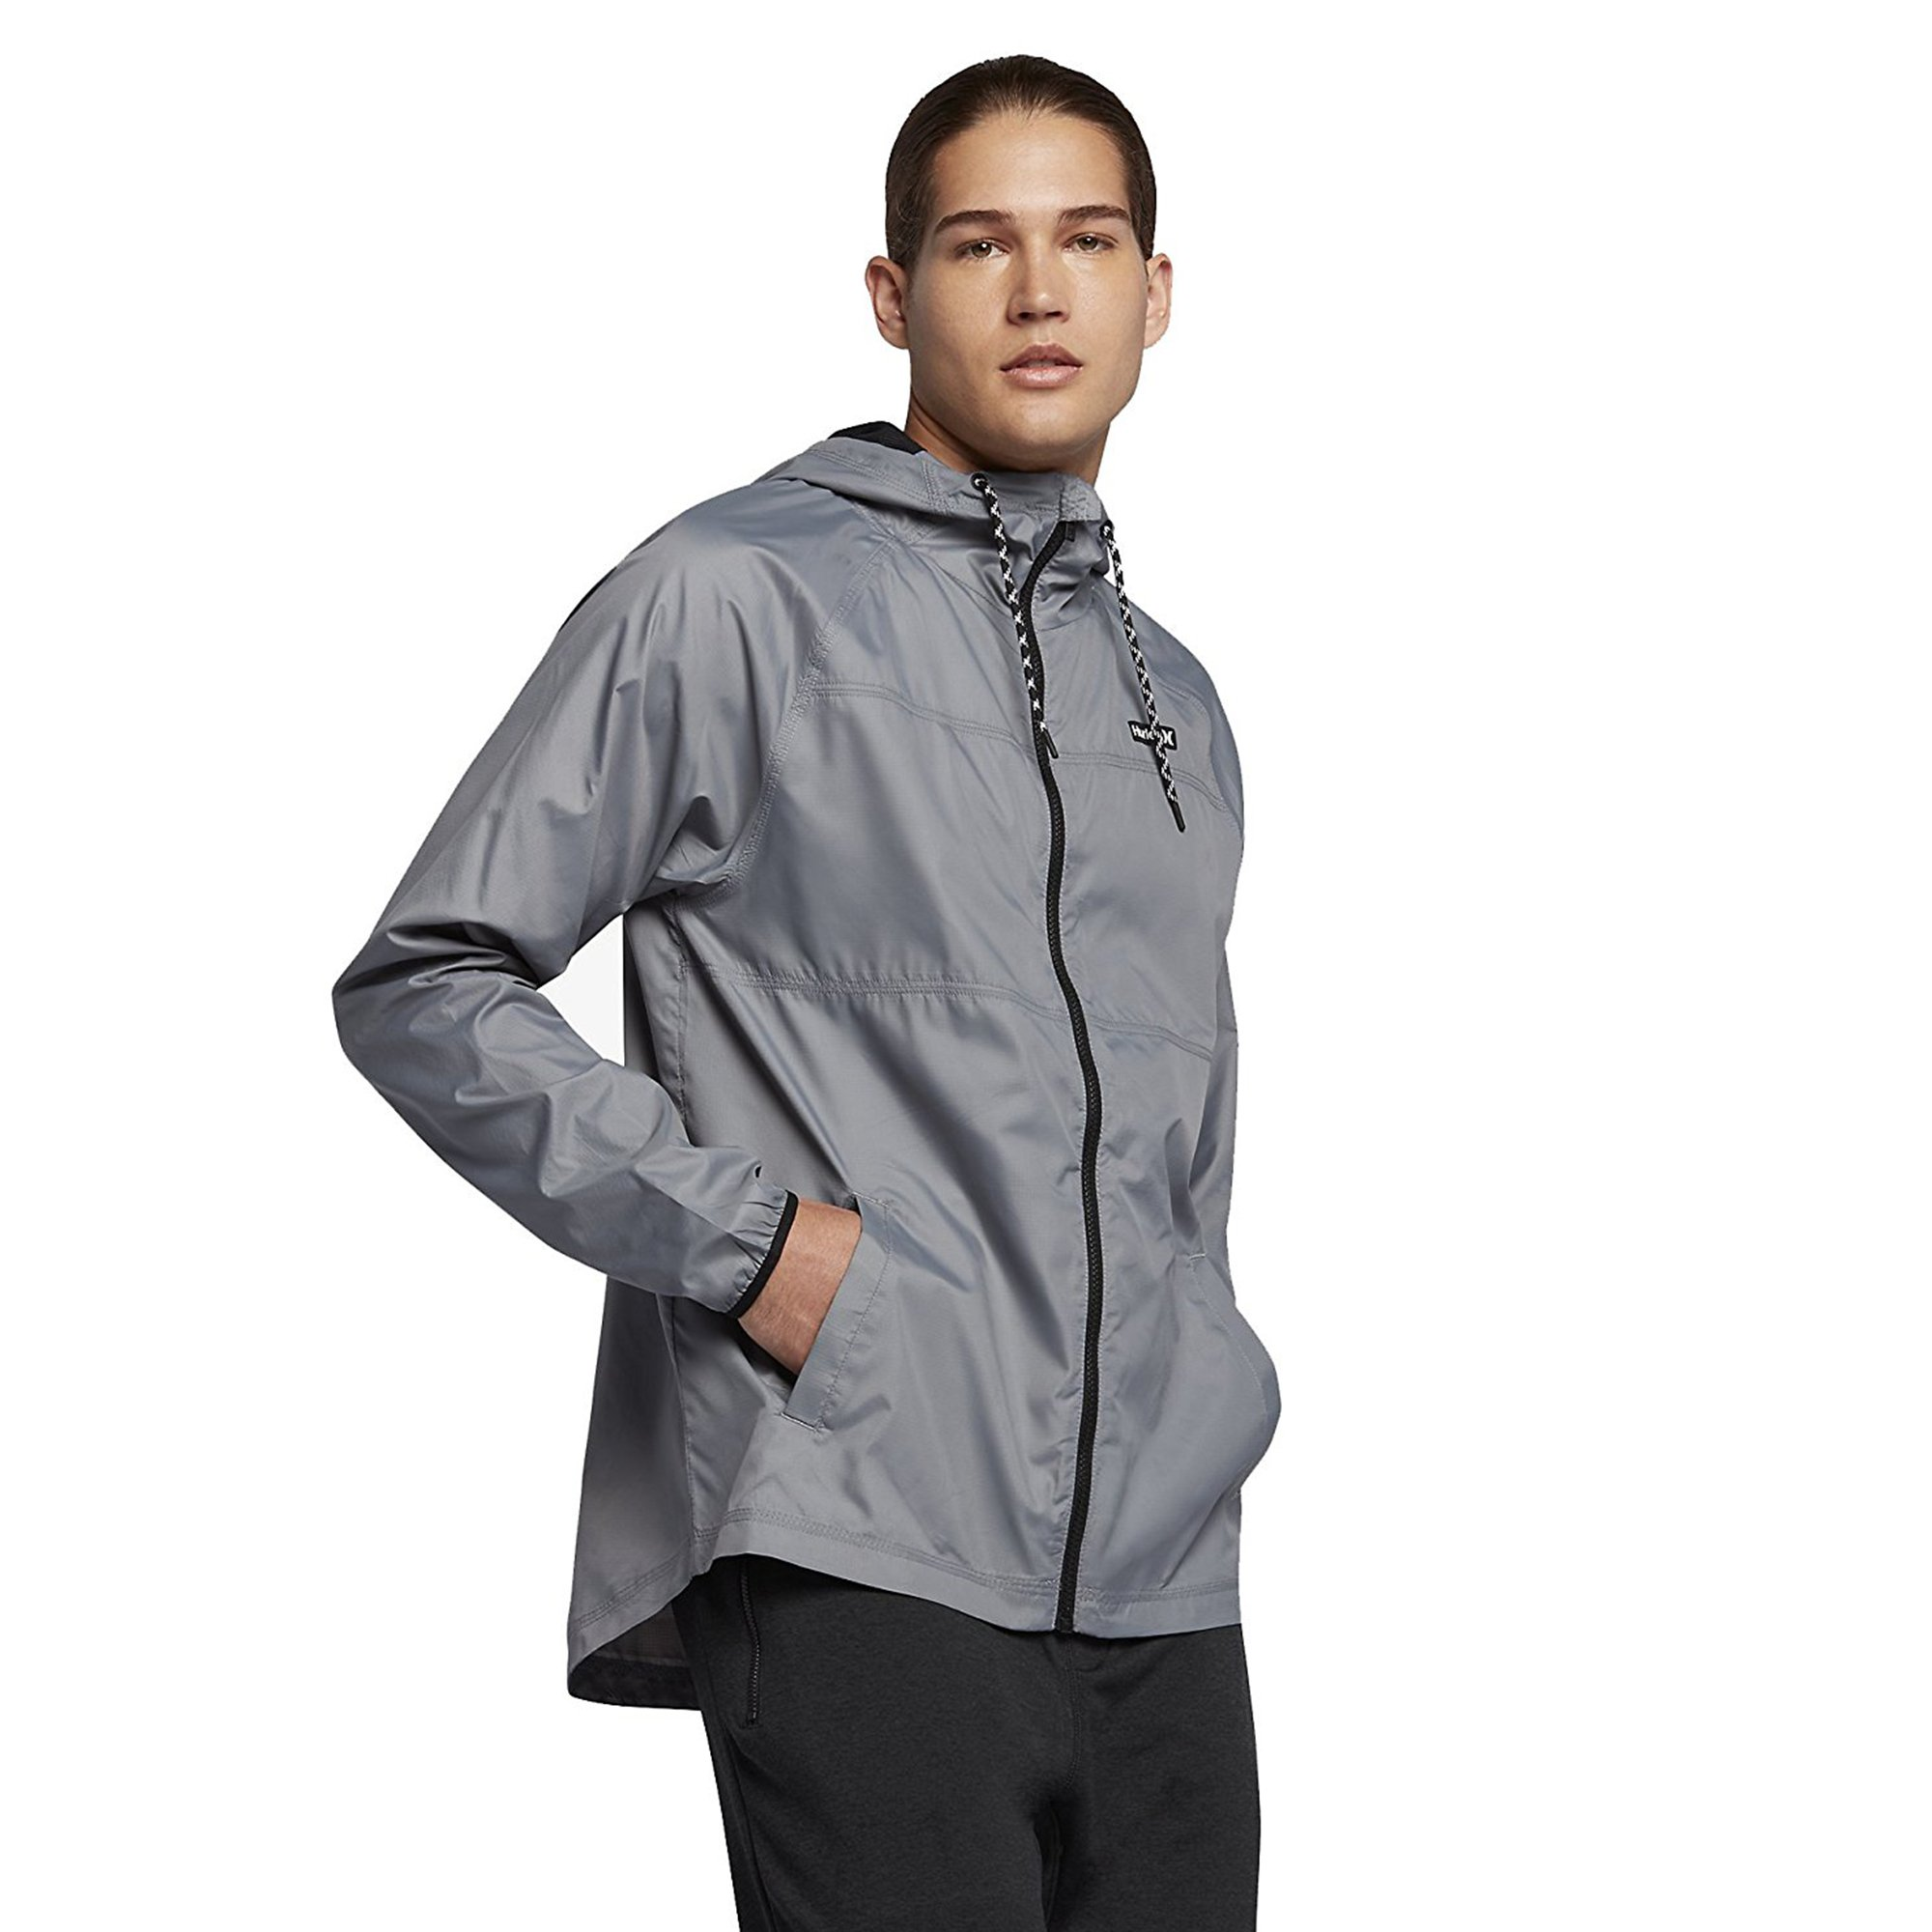 Hurley MJK0002160 Men's Protect Solid Jacket In, Cool Grey - L